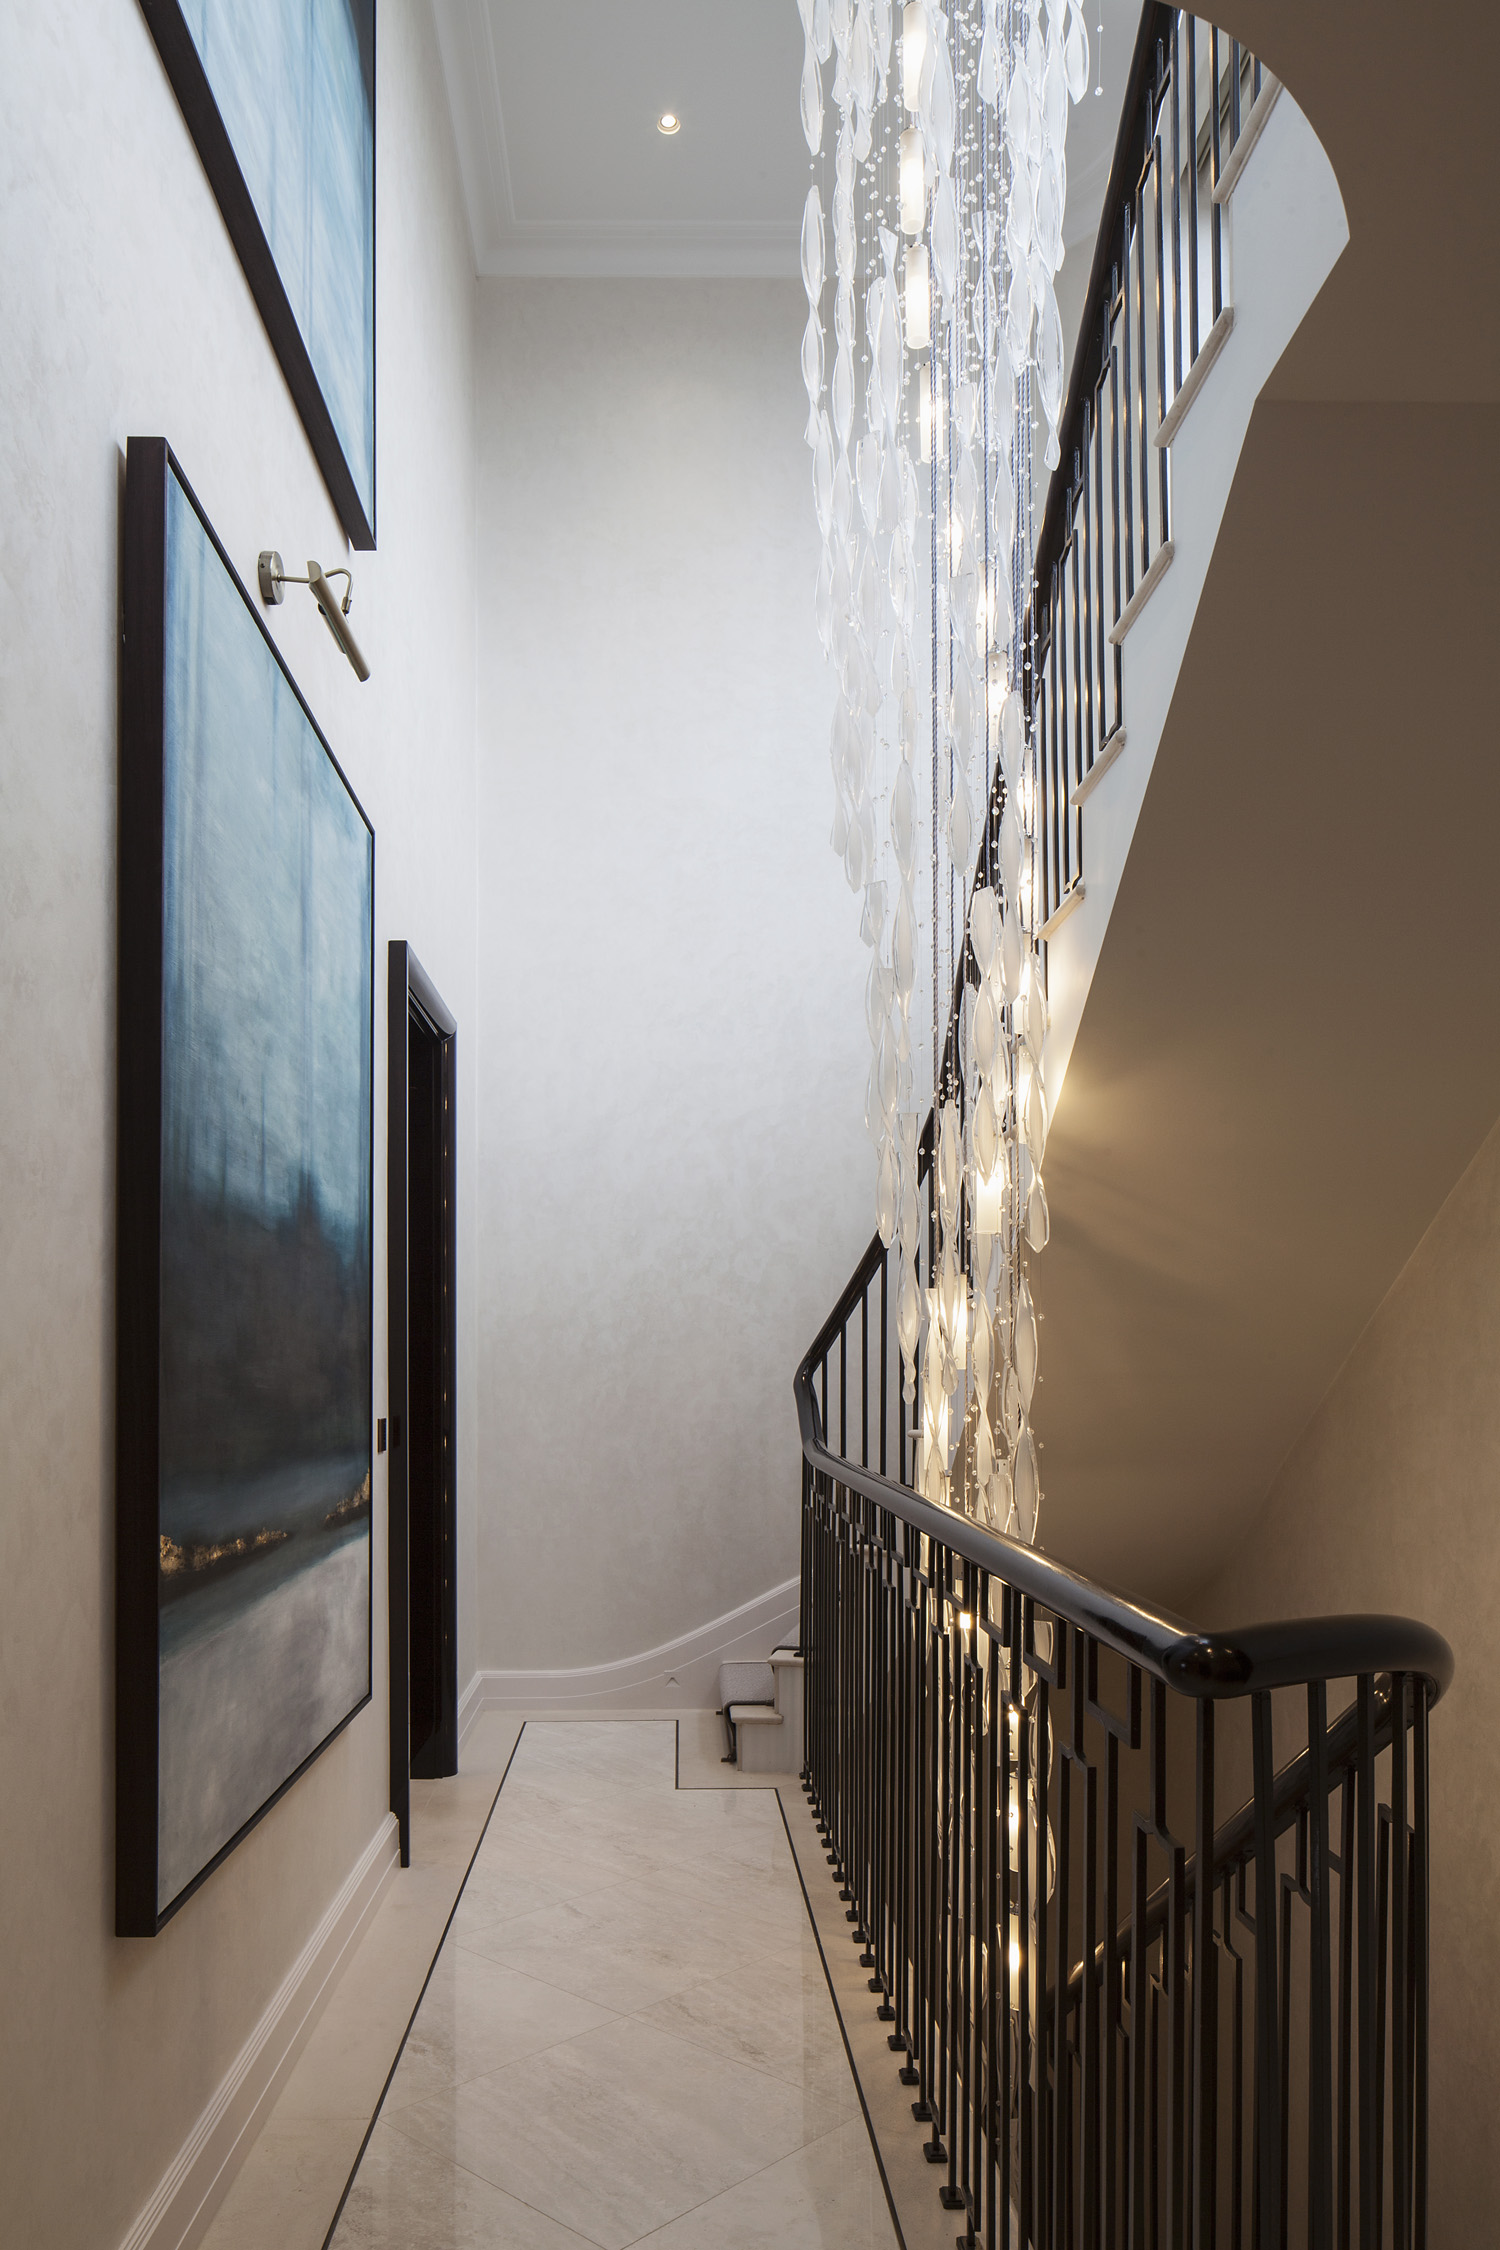 Fenton Whelan Eaton Place featuring Nulty Bespoke lighting project images for SBID interior design blog, Project of the Week